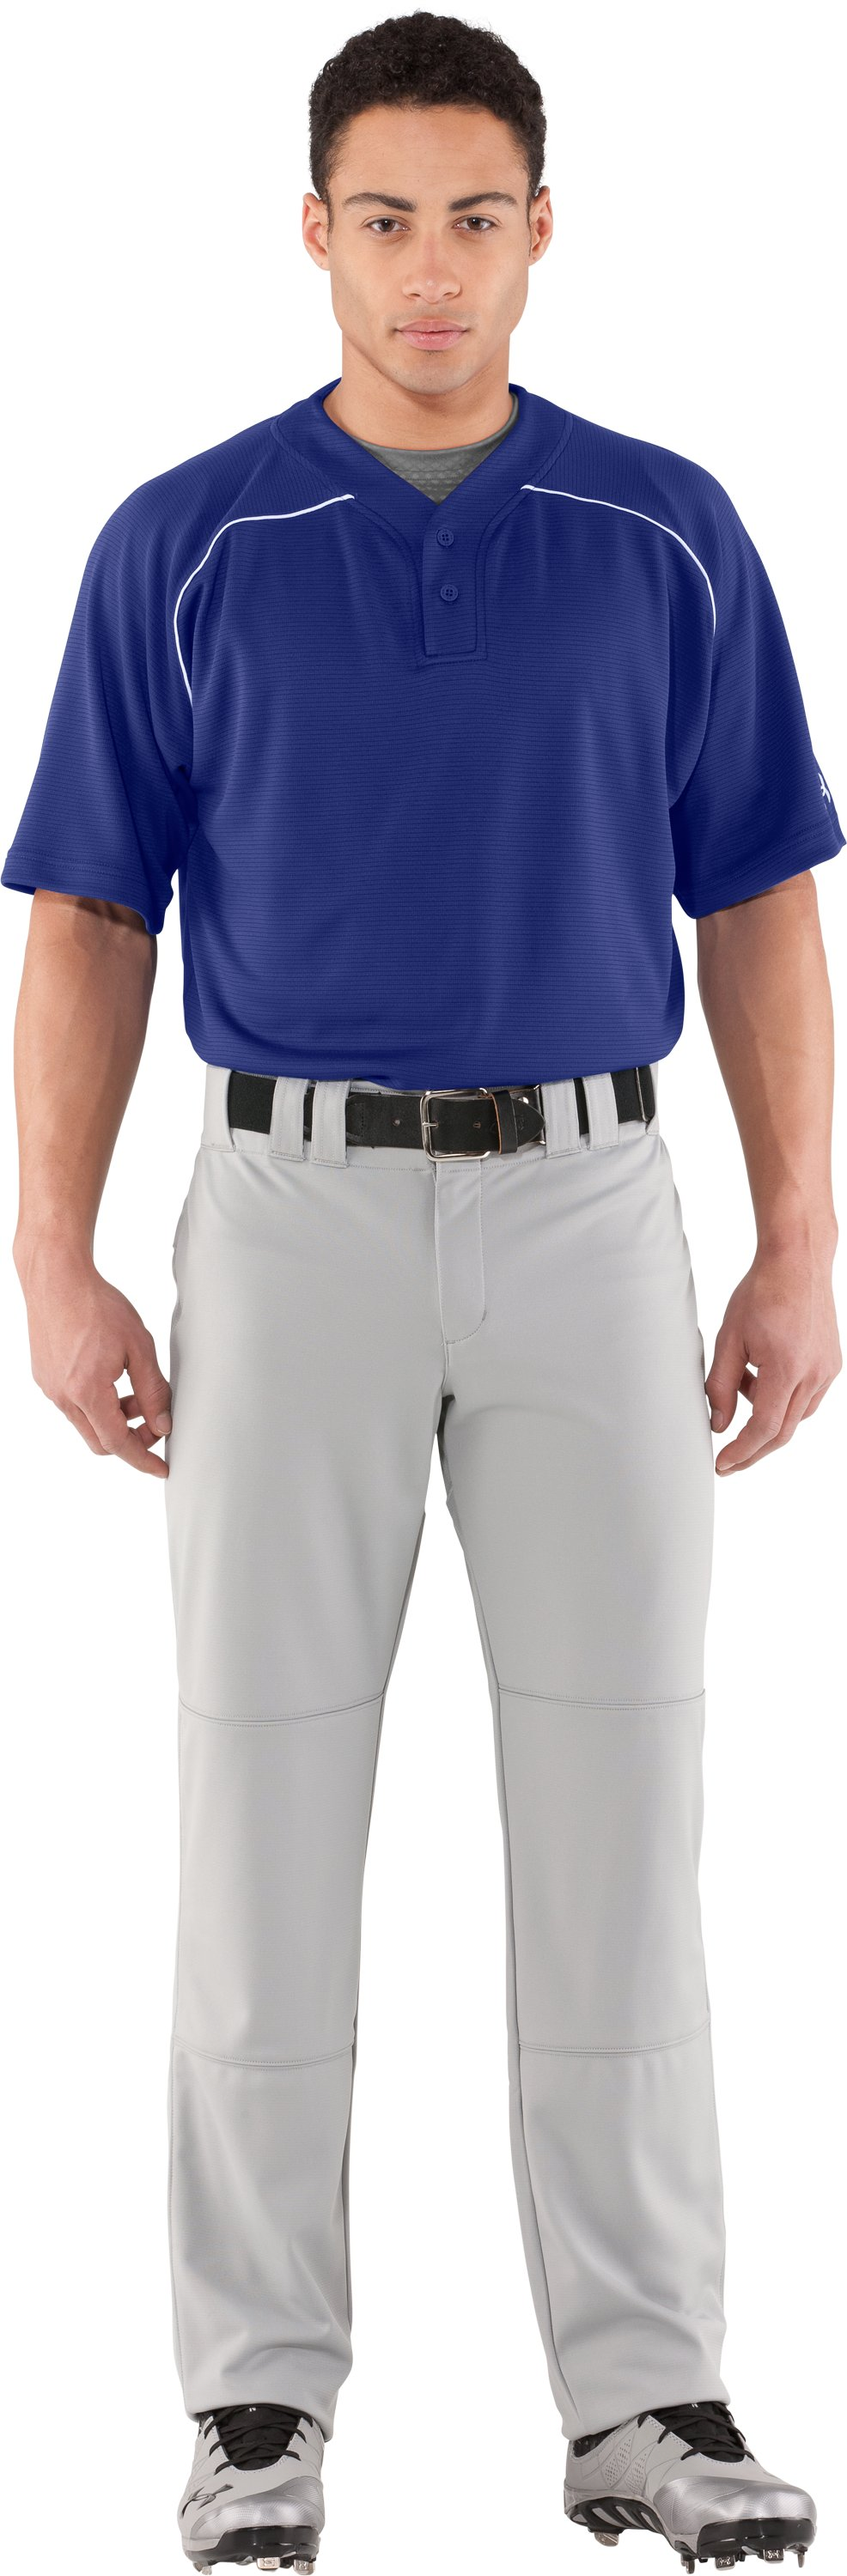 Men's UA Landsdown II Baseball Jersey, Royal